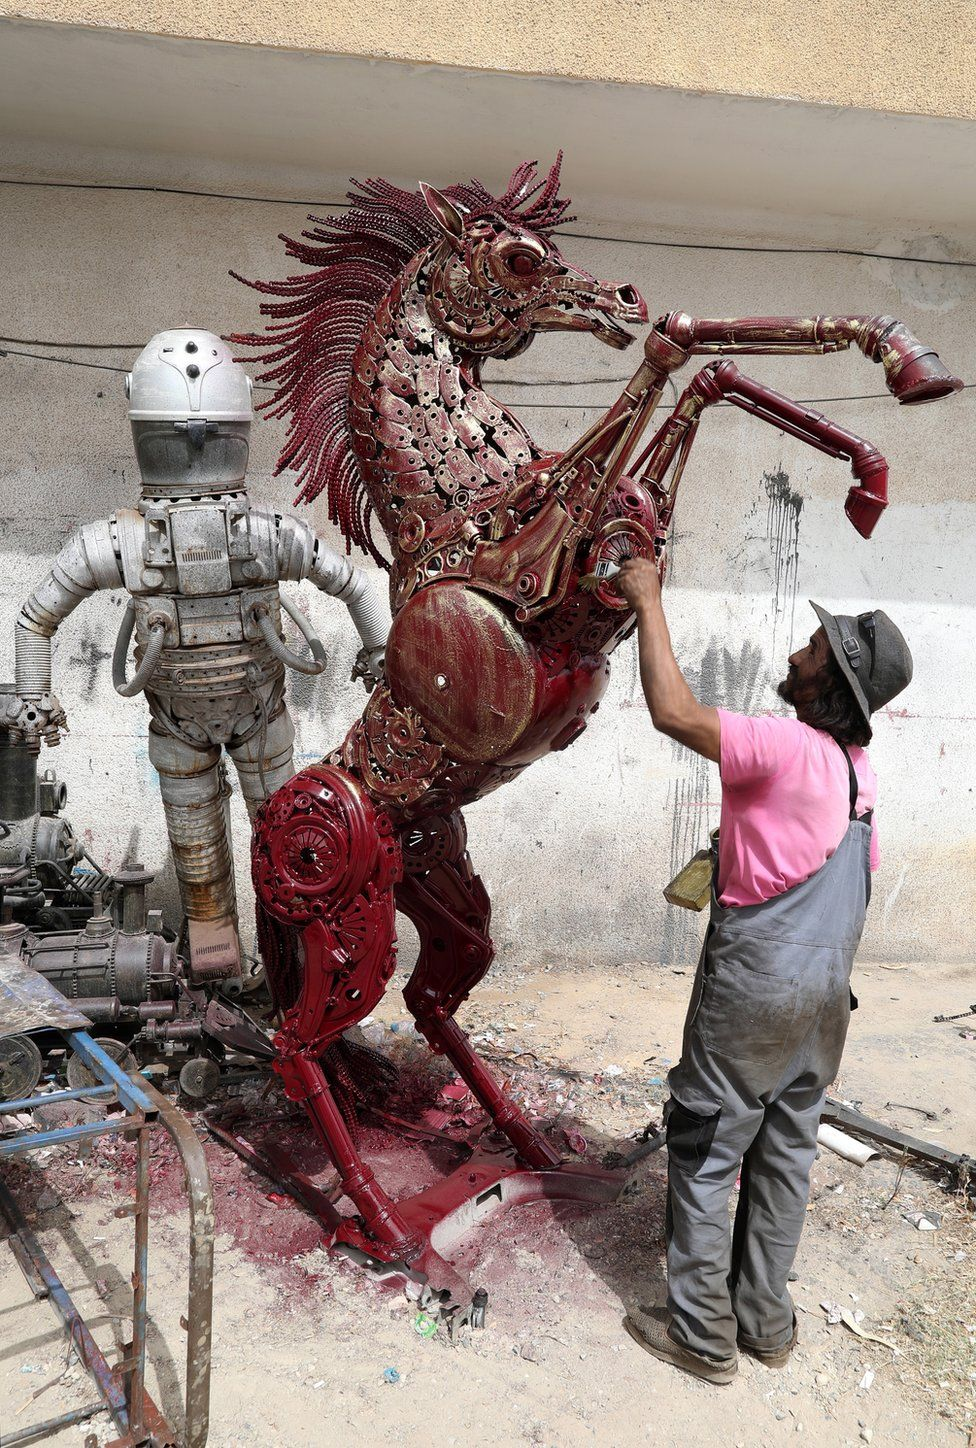 A man works on a metal sculpture of a horse.